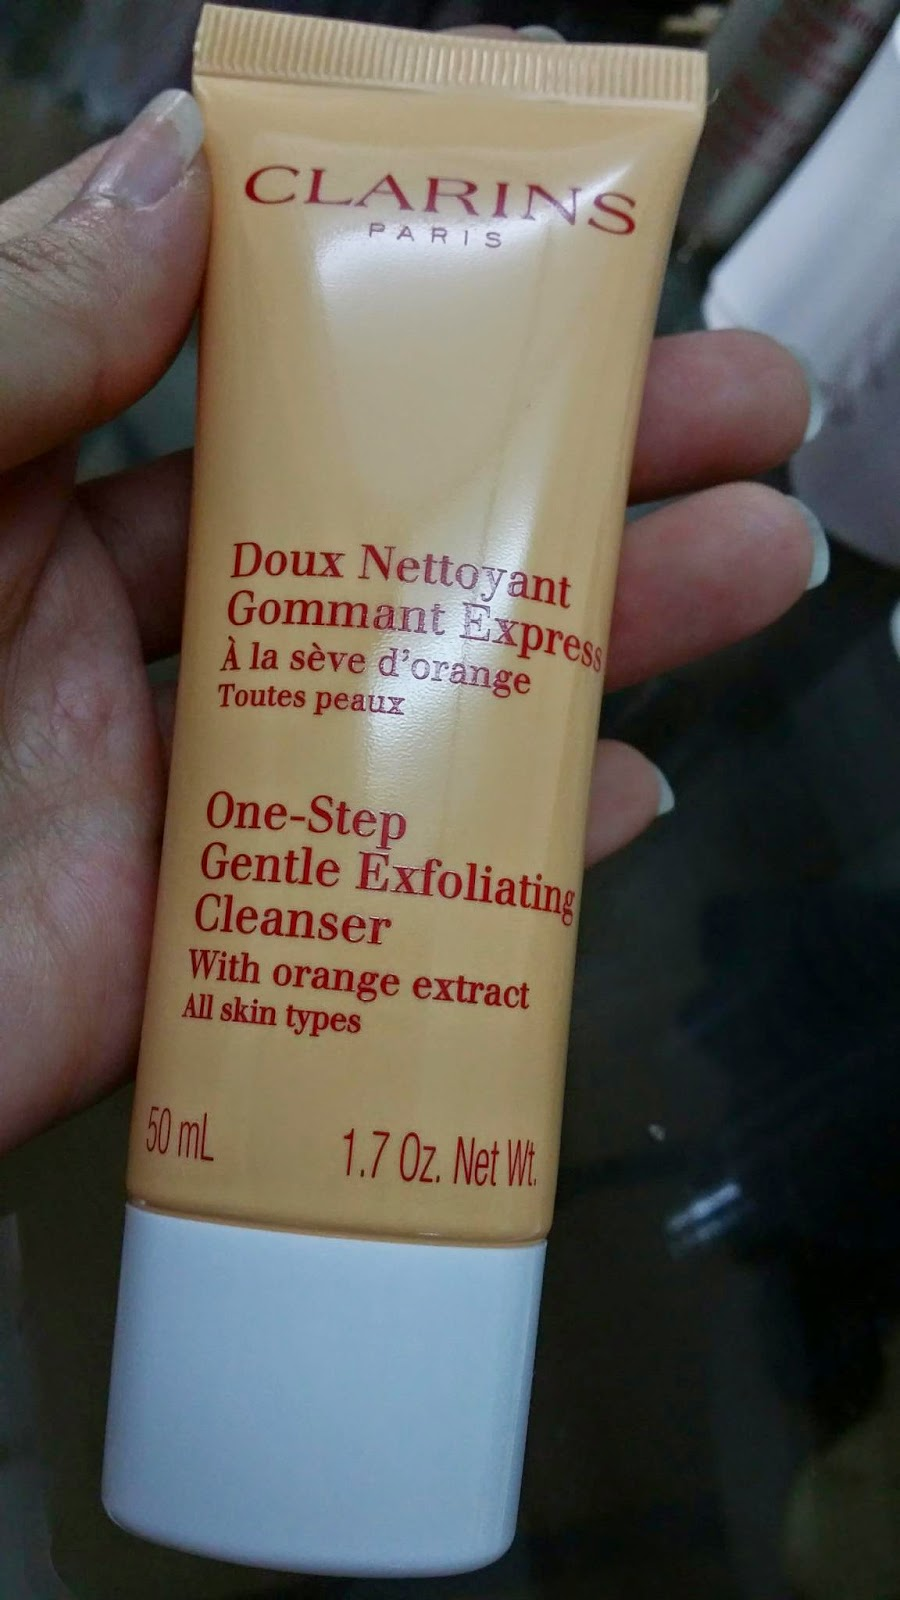 One-Step Facial Cleanser with Orange Extract by Clarins #21